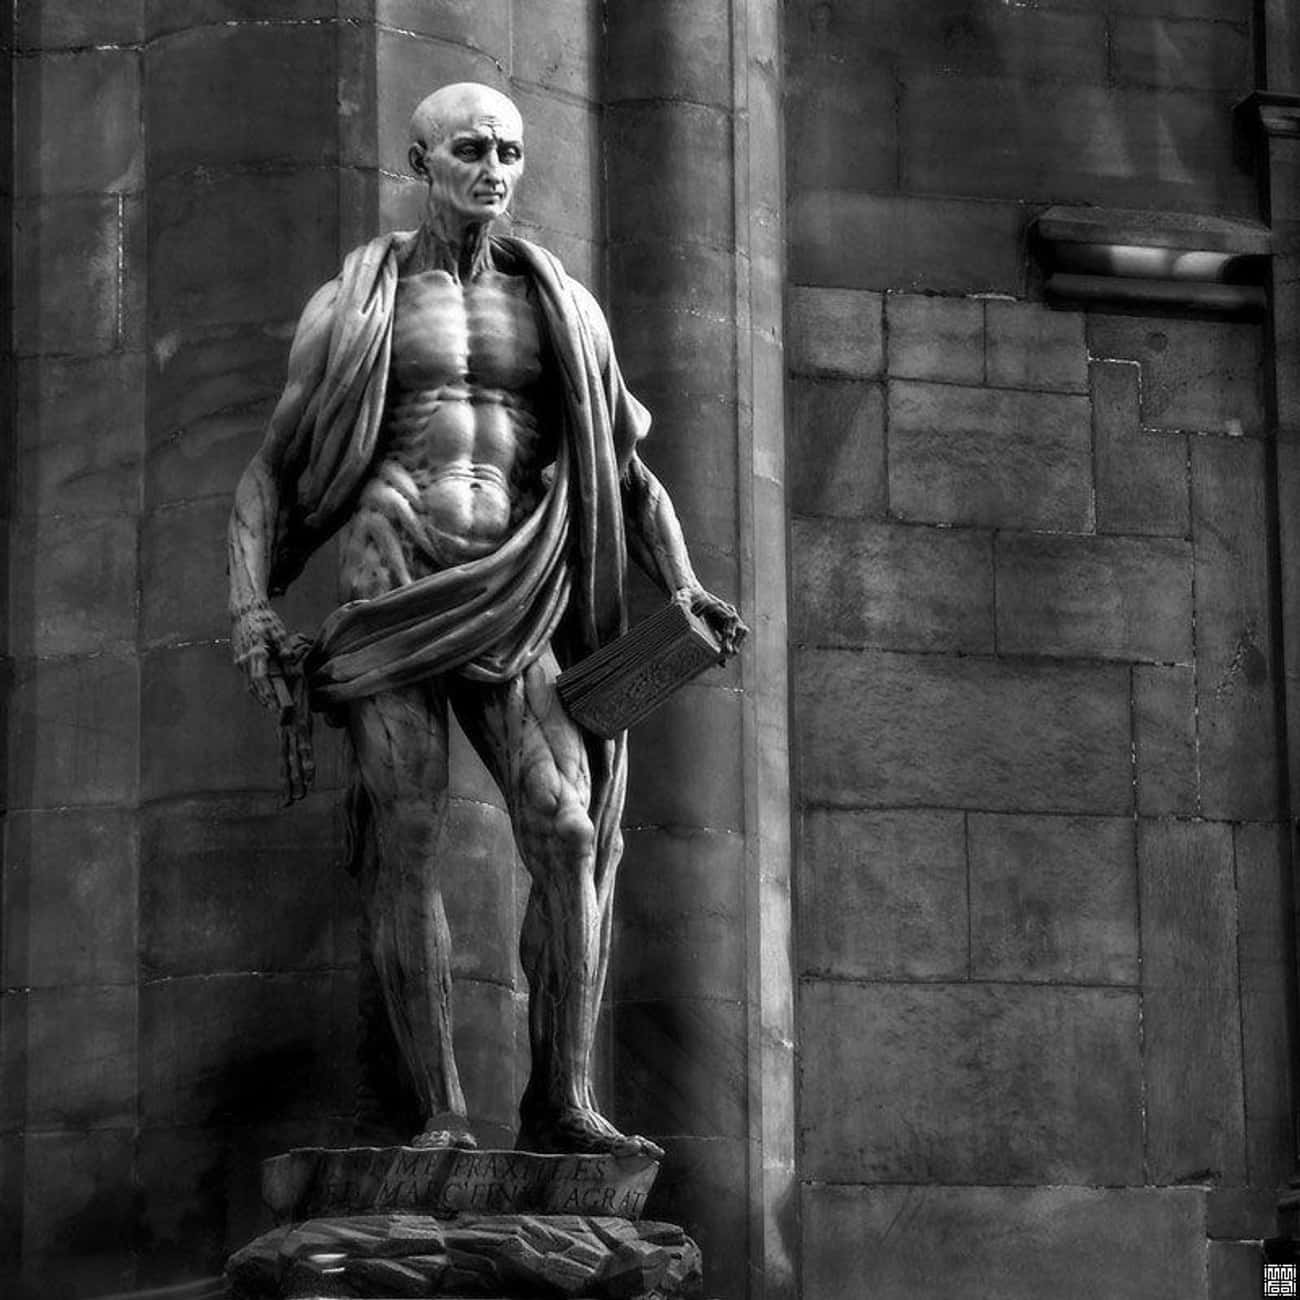 The Saint Was Flayed Like A Le is listed (or ranked) 3 on the list Why Is There A 450-Year-Old Catholic Statue Of A Flayed Saint In The Middle Of Milan?